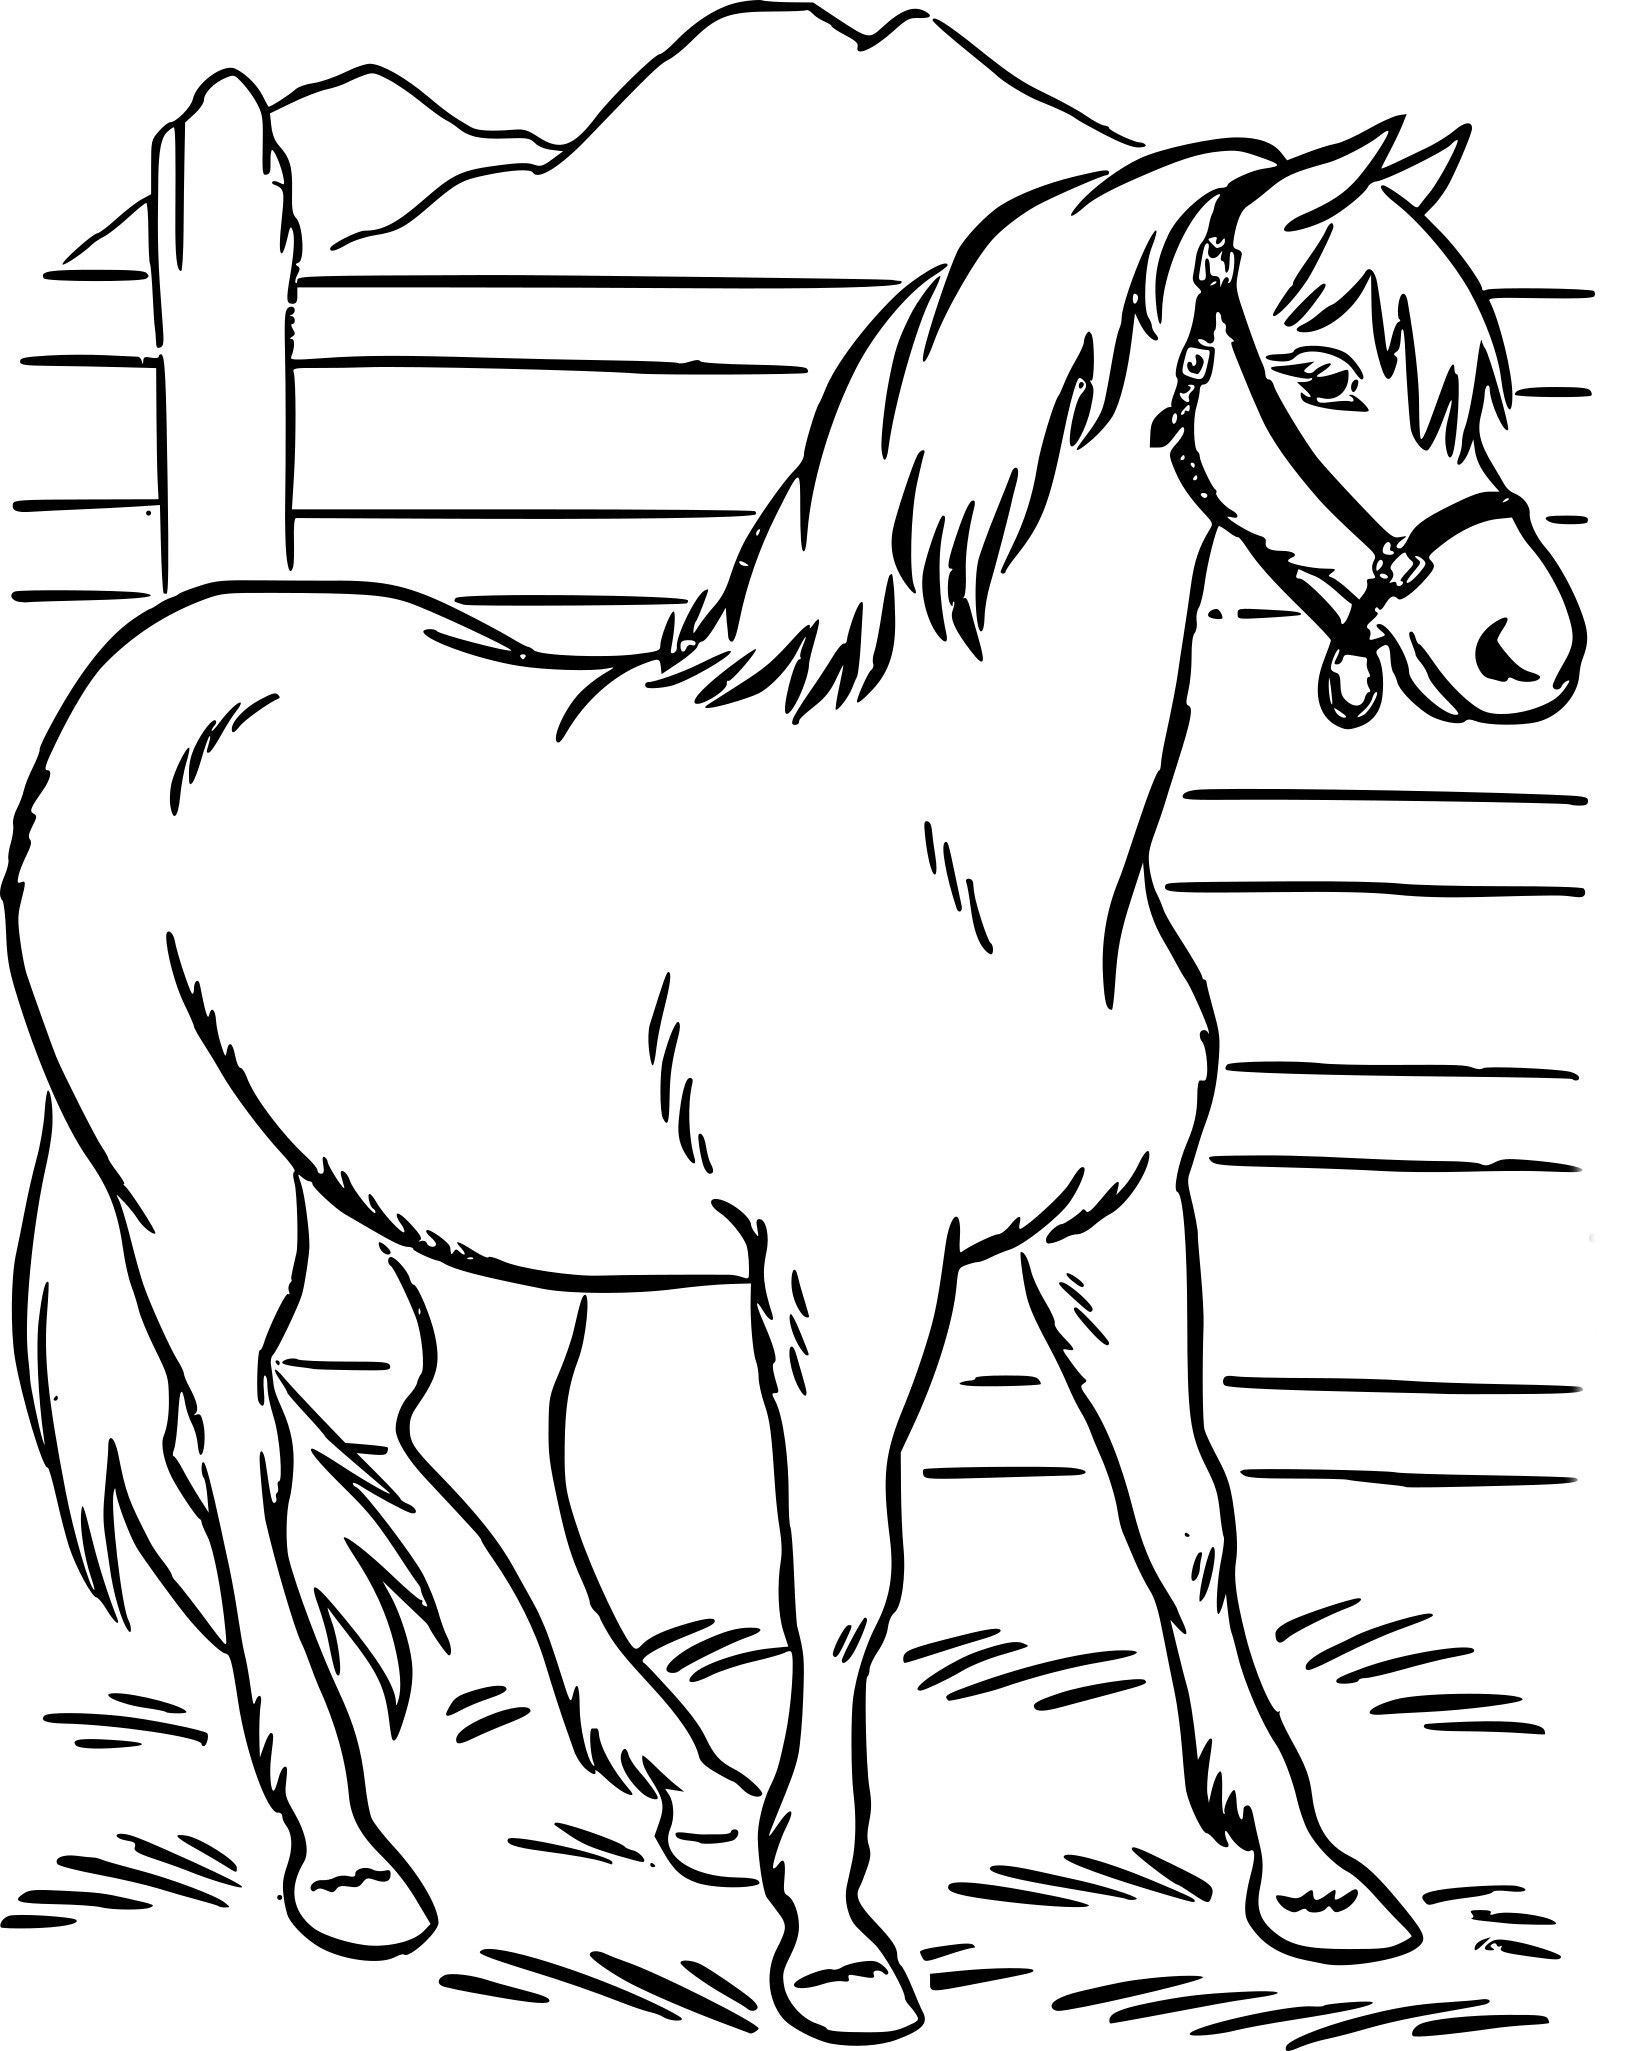 Coloriage Gulli Cheval Coloriages Imprimer Download Coloriage